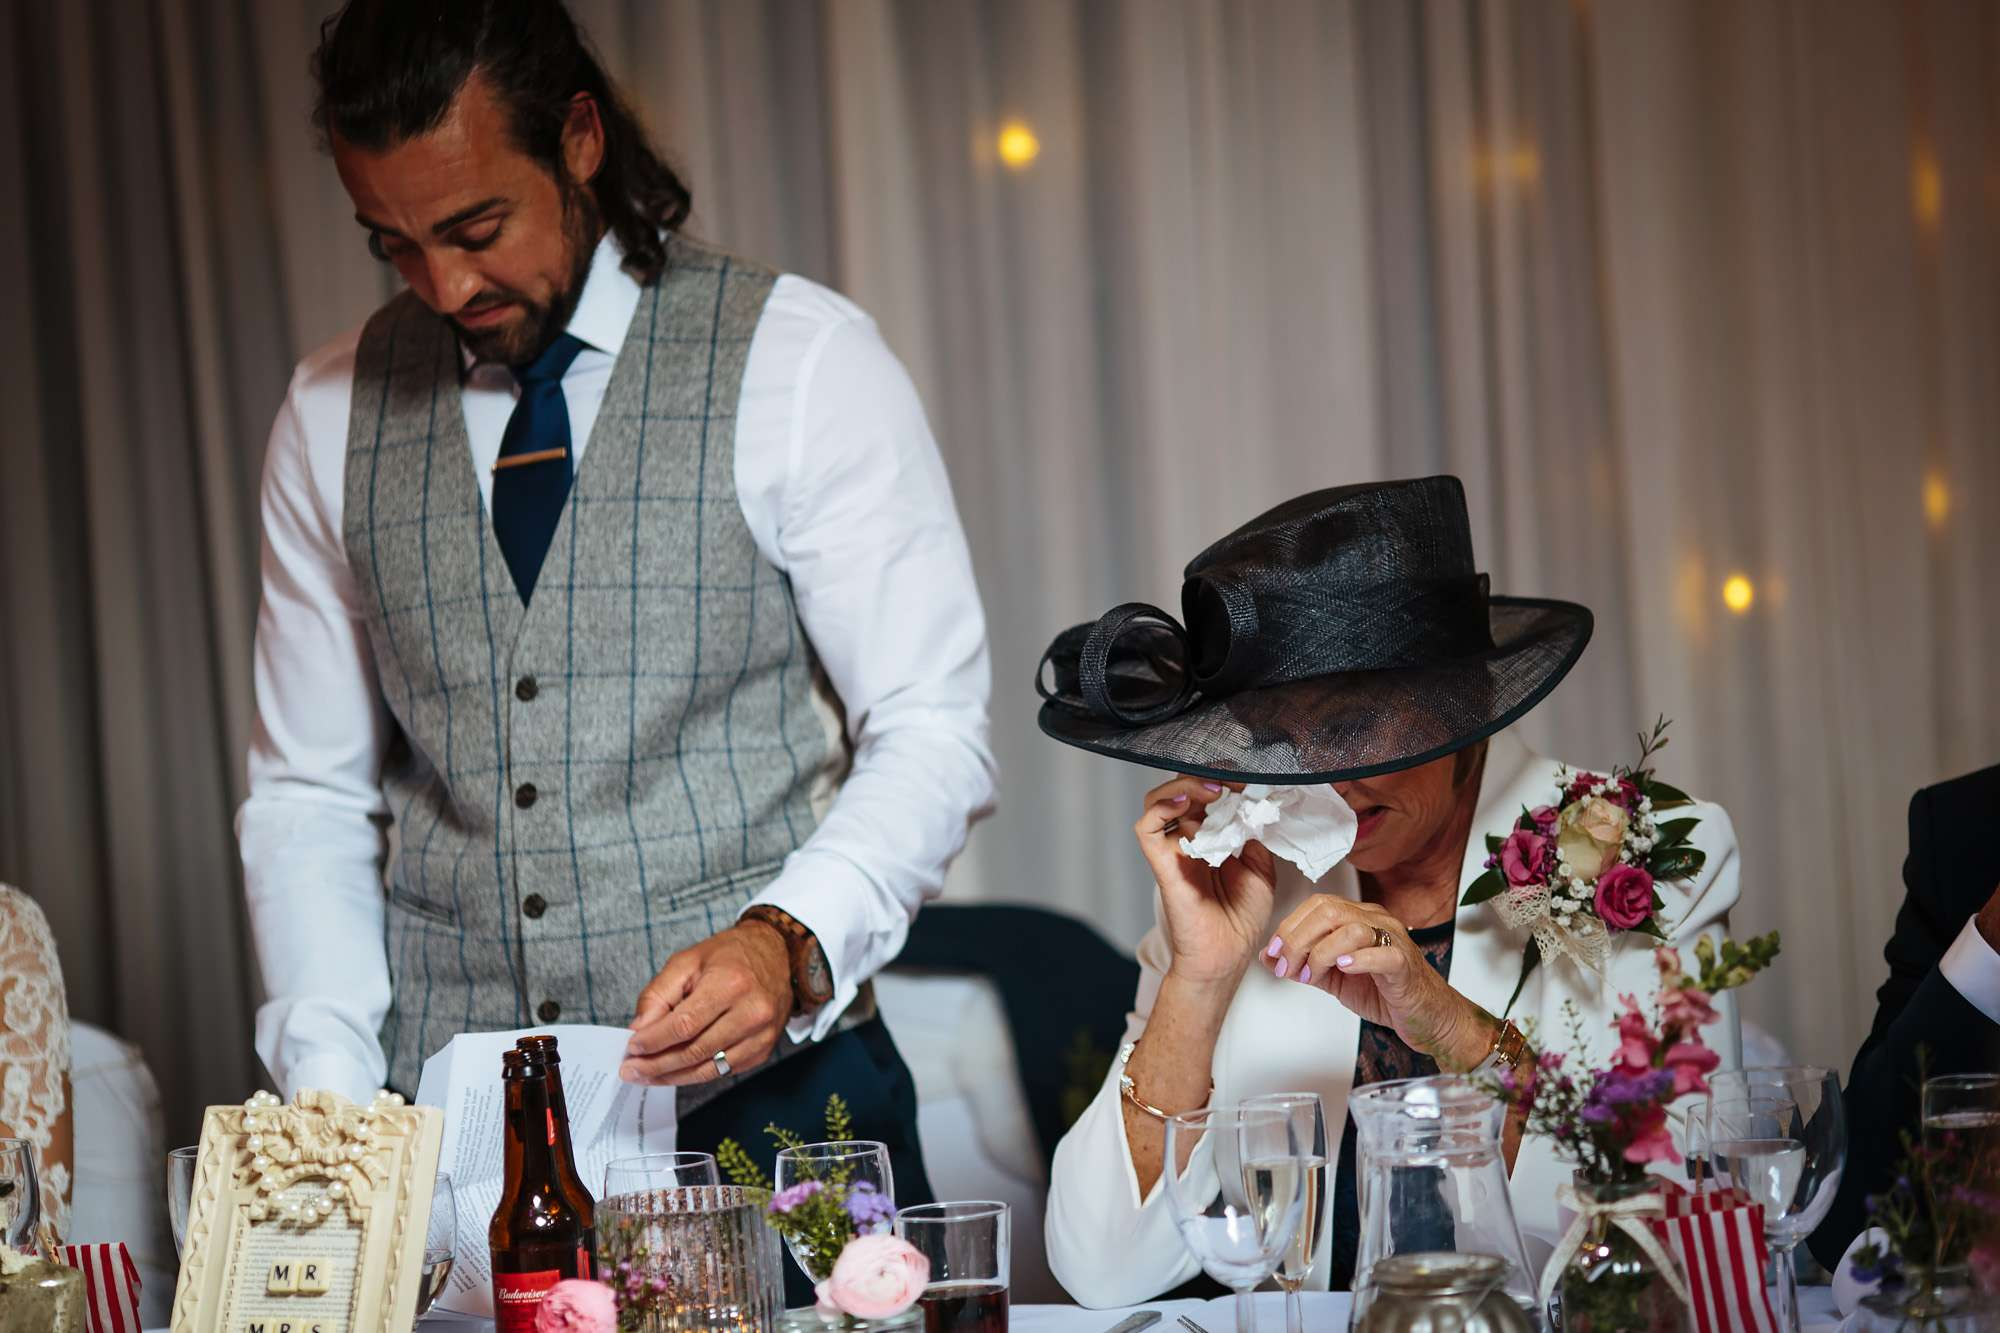 Grooms mum crying during the speeches at a wedding